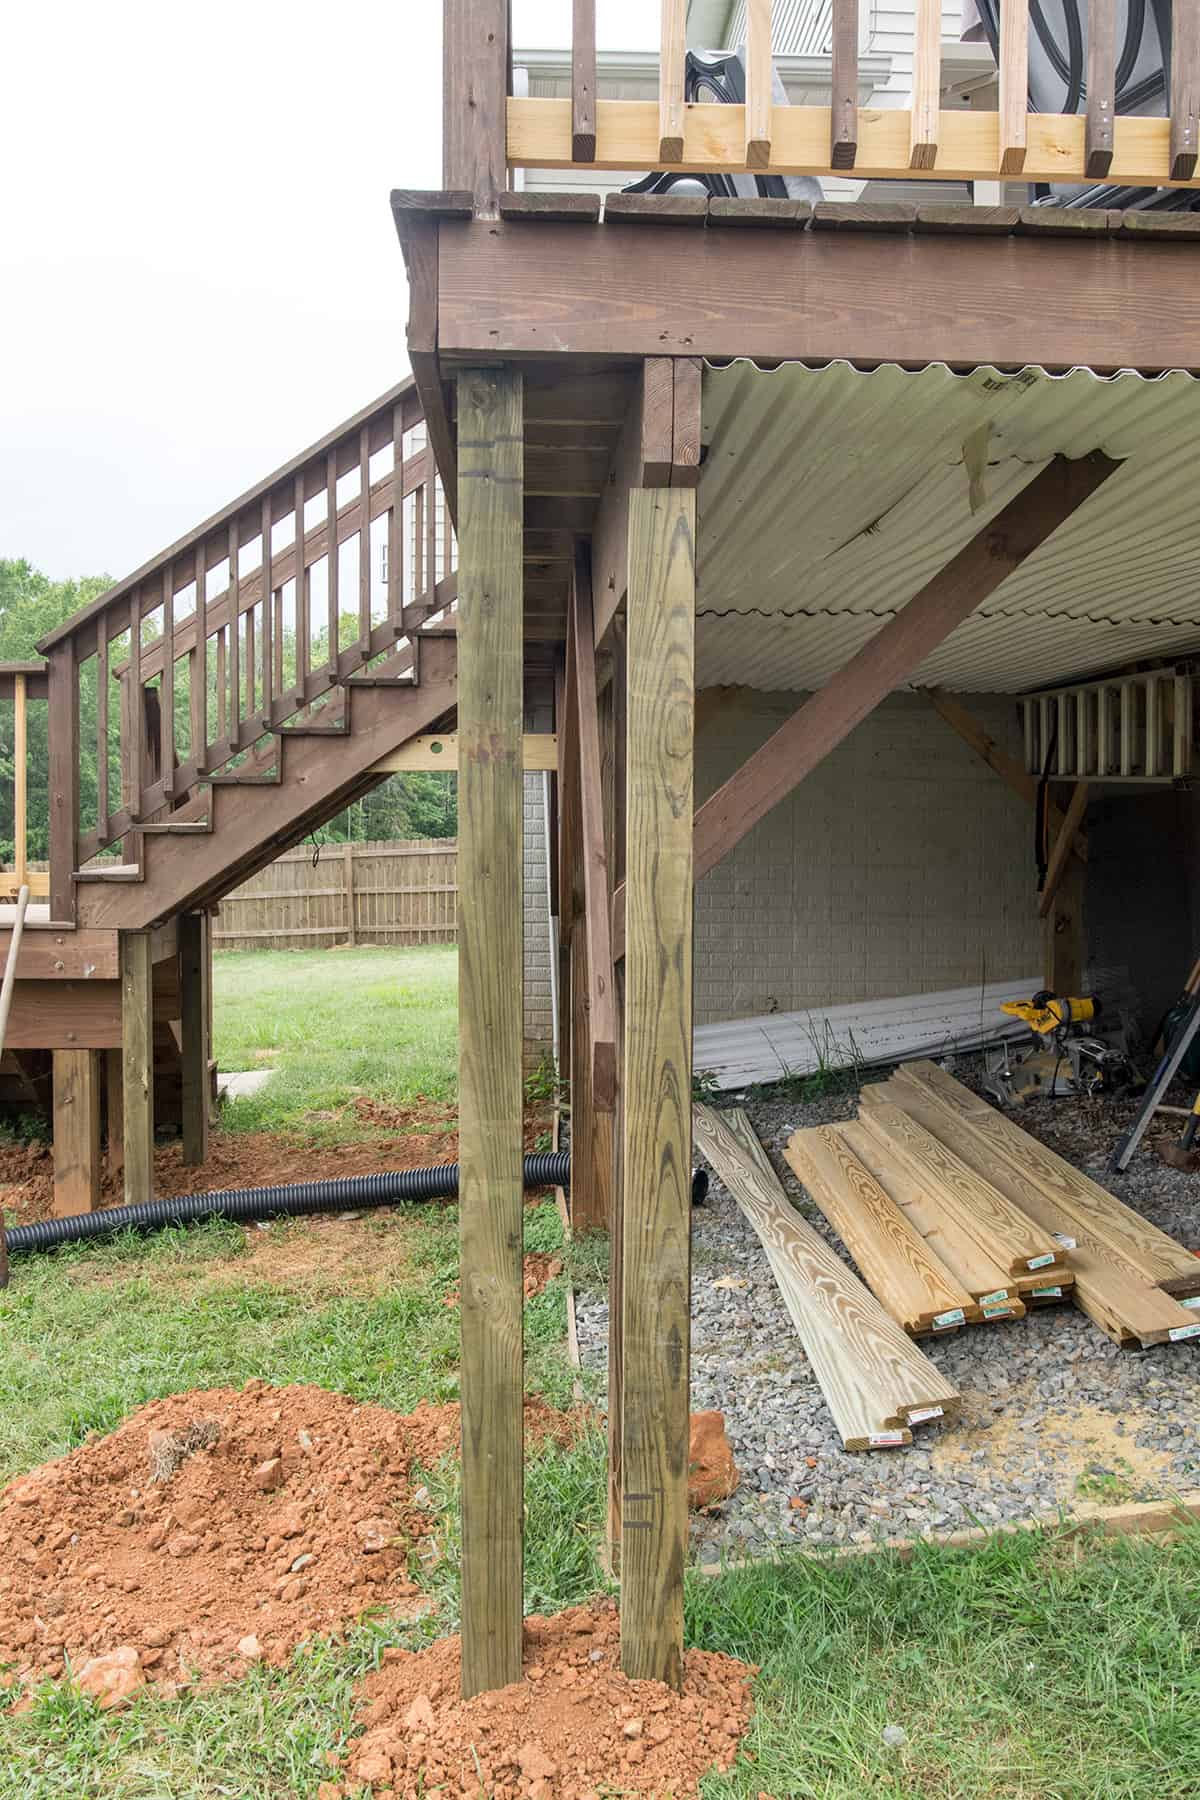 Progression of framing a deck to create a storage enclosure underneath.